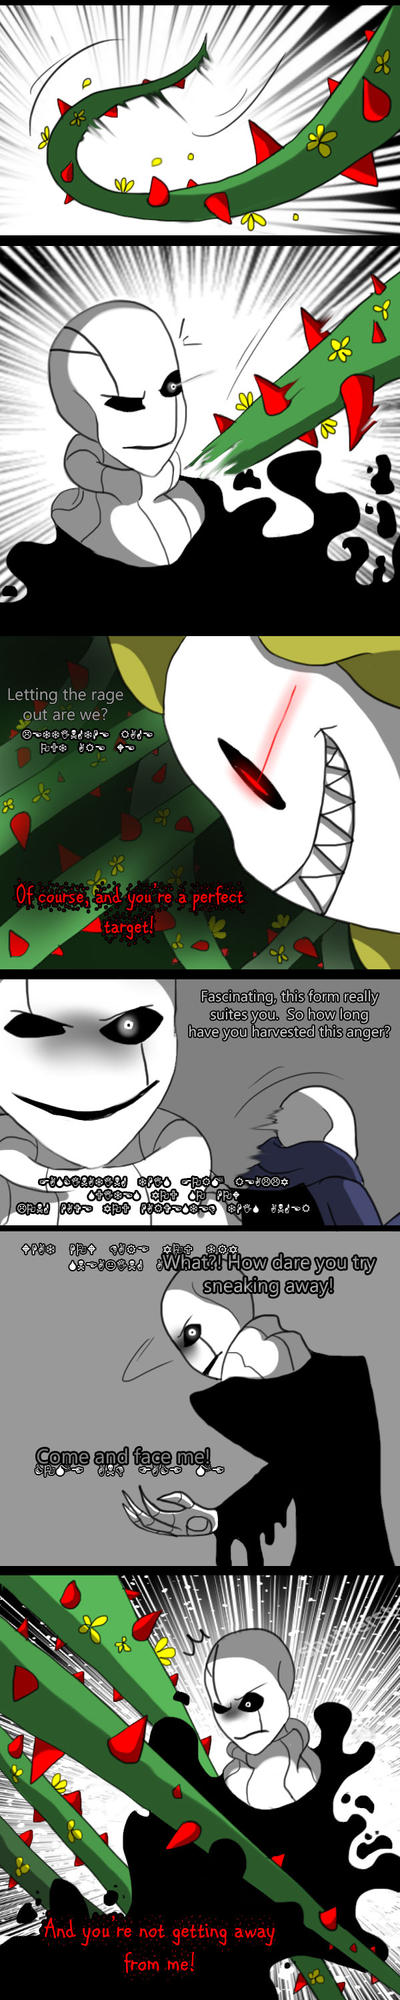 Undertale New world (page 91) by joselyn565